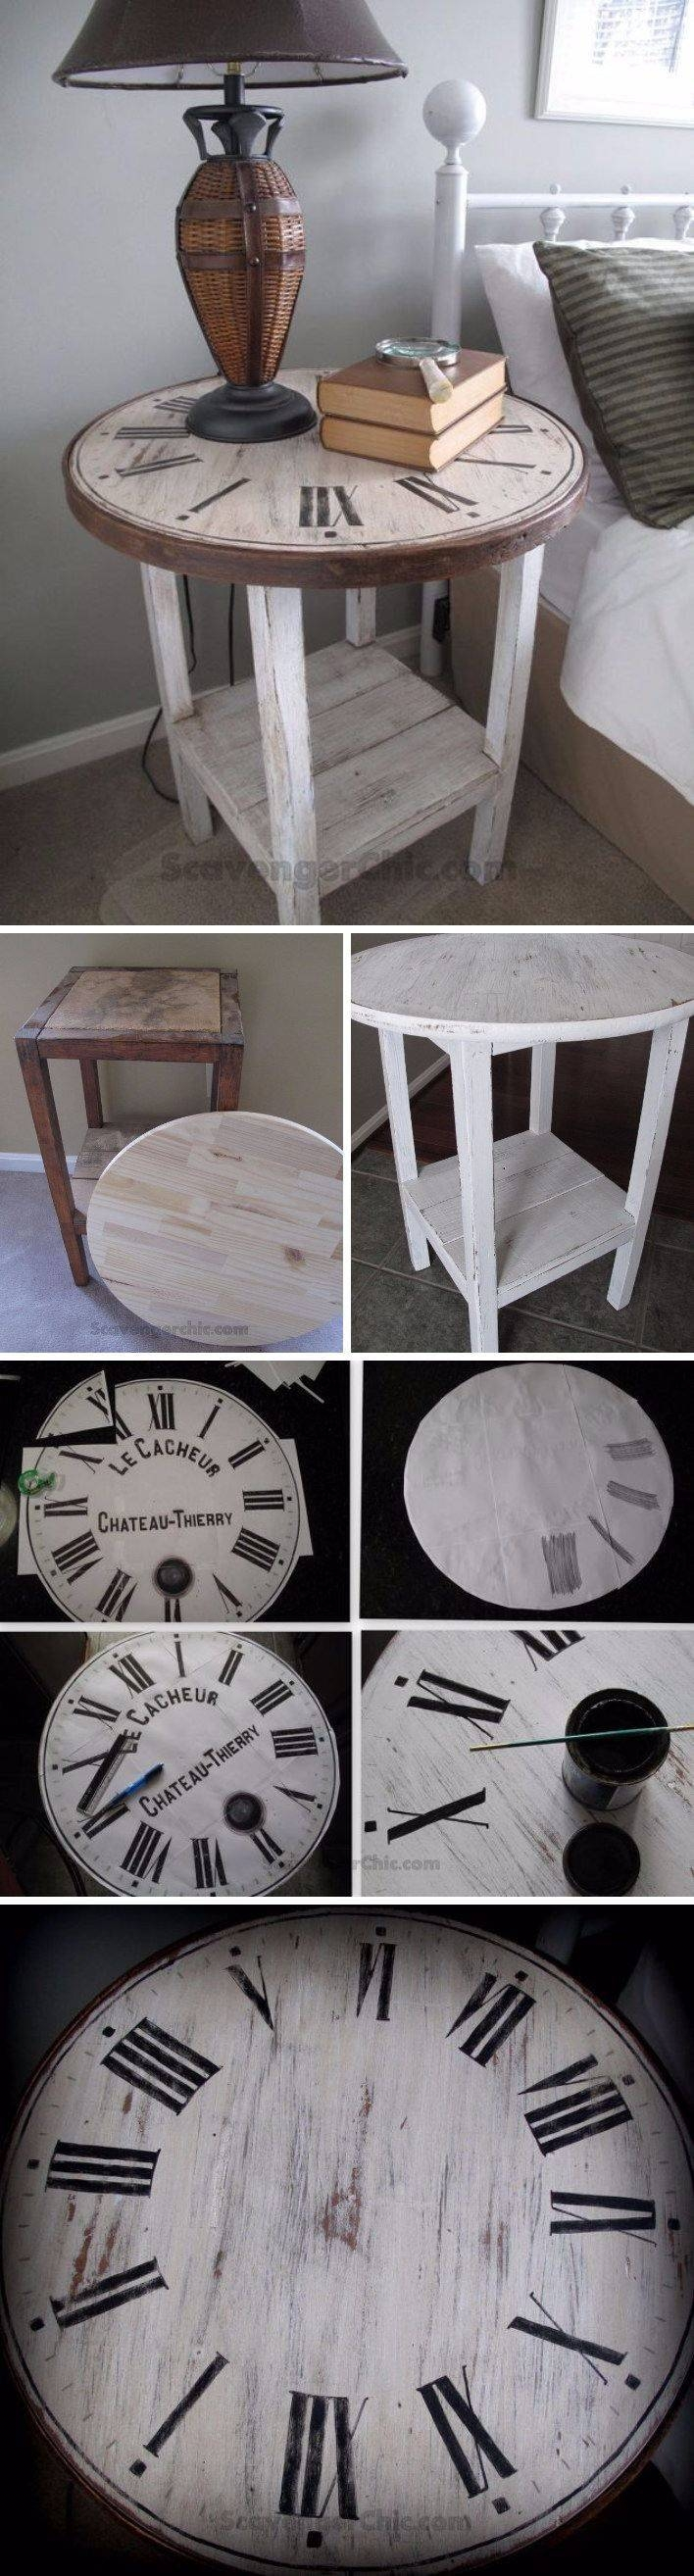 Best 20+ Clock Table Ideas On Pinterest | Small Round Side Table Throughout Clock Coffee Tables Round Shaped (View 6 of 30)